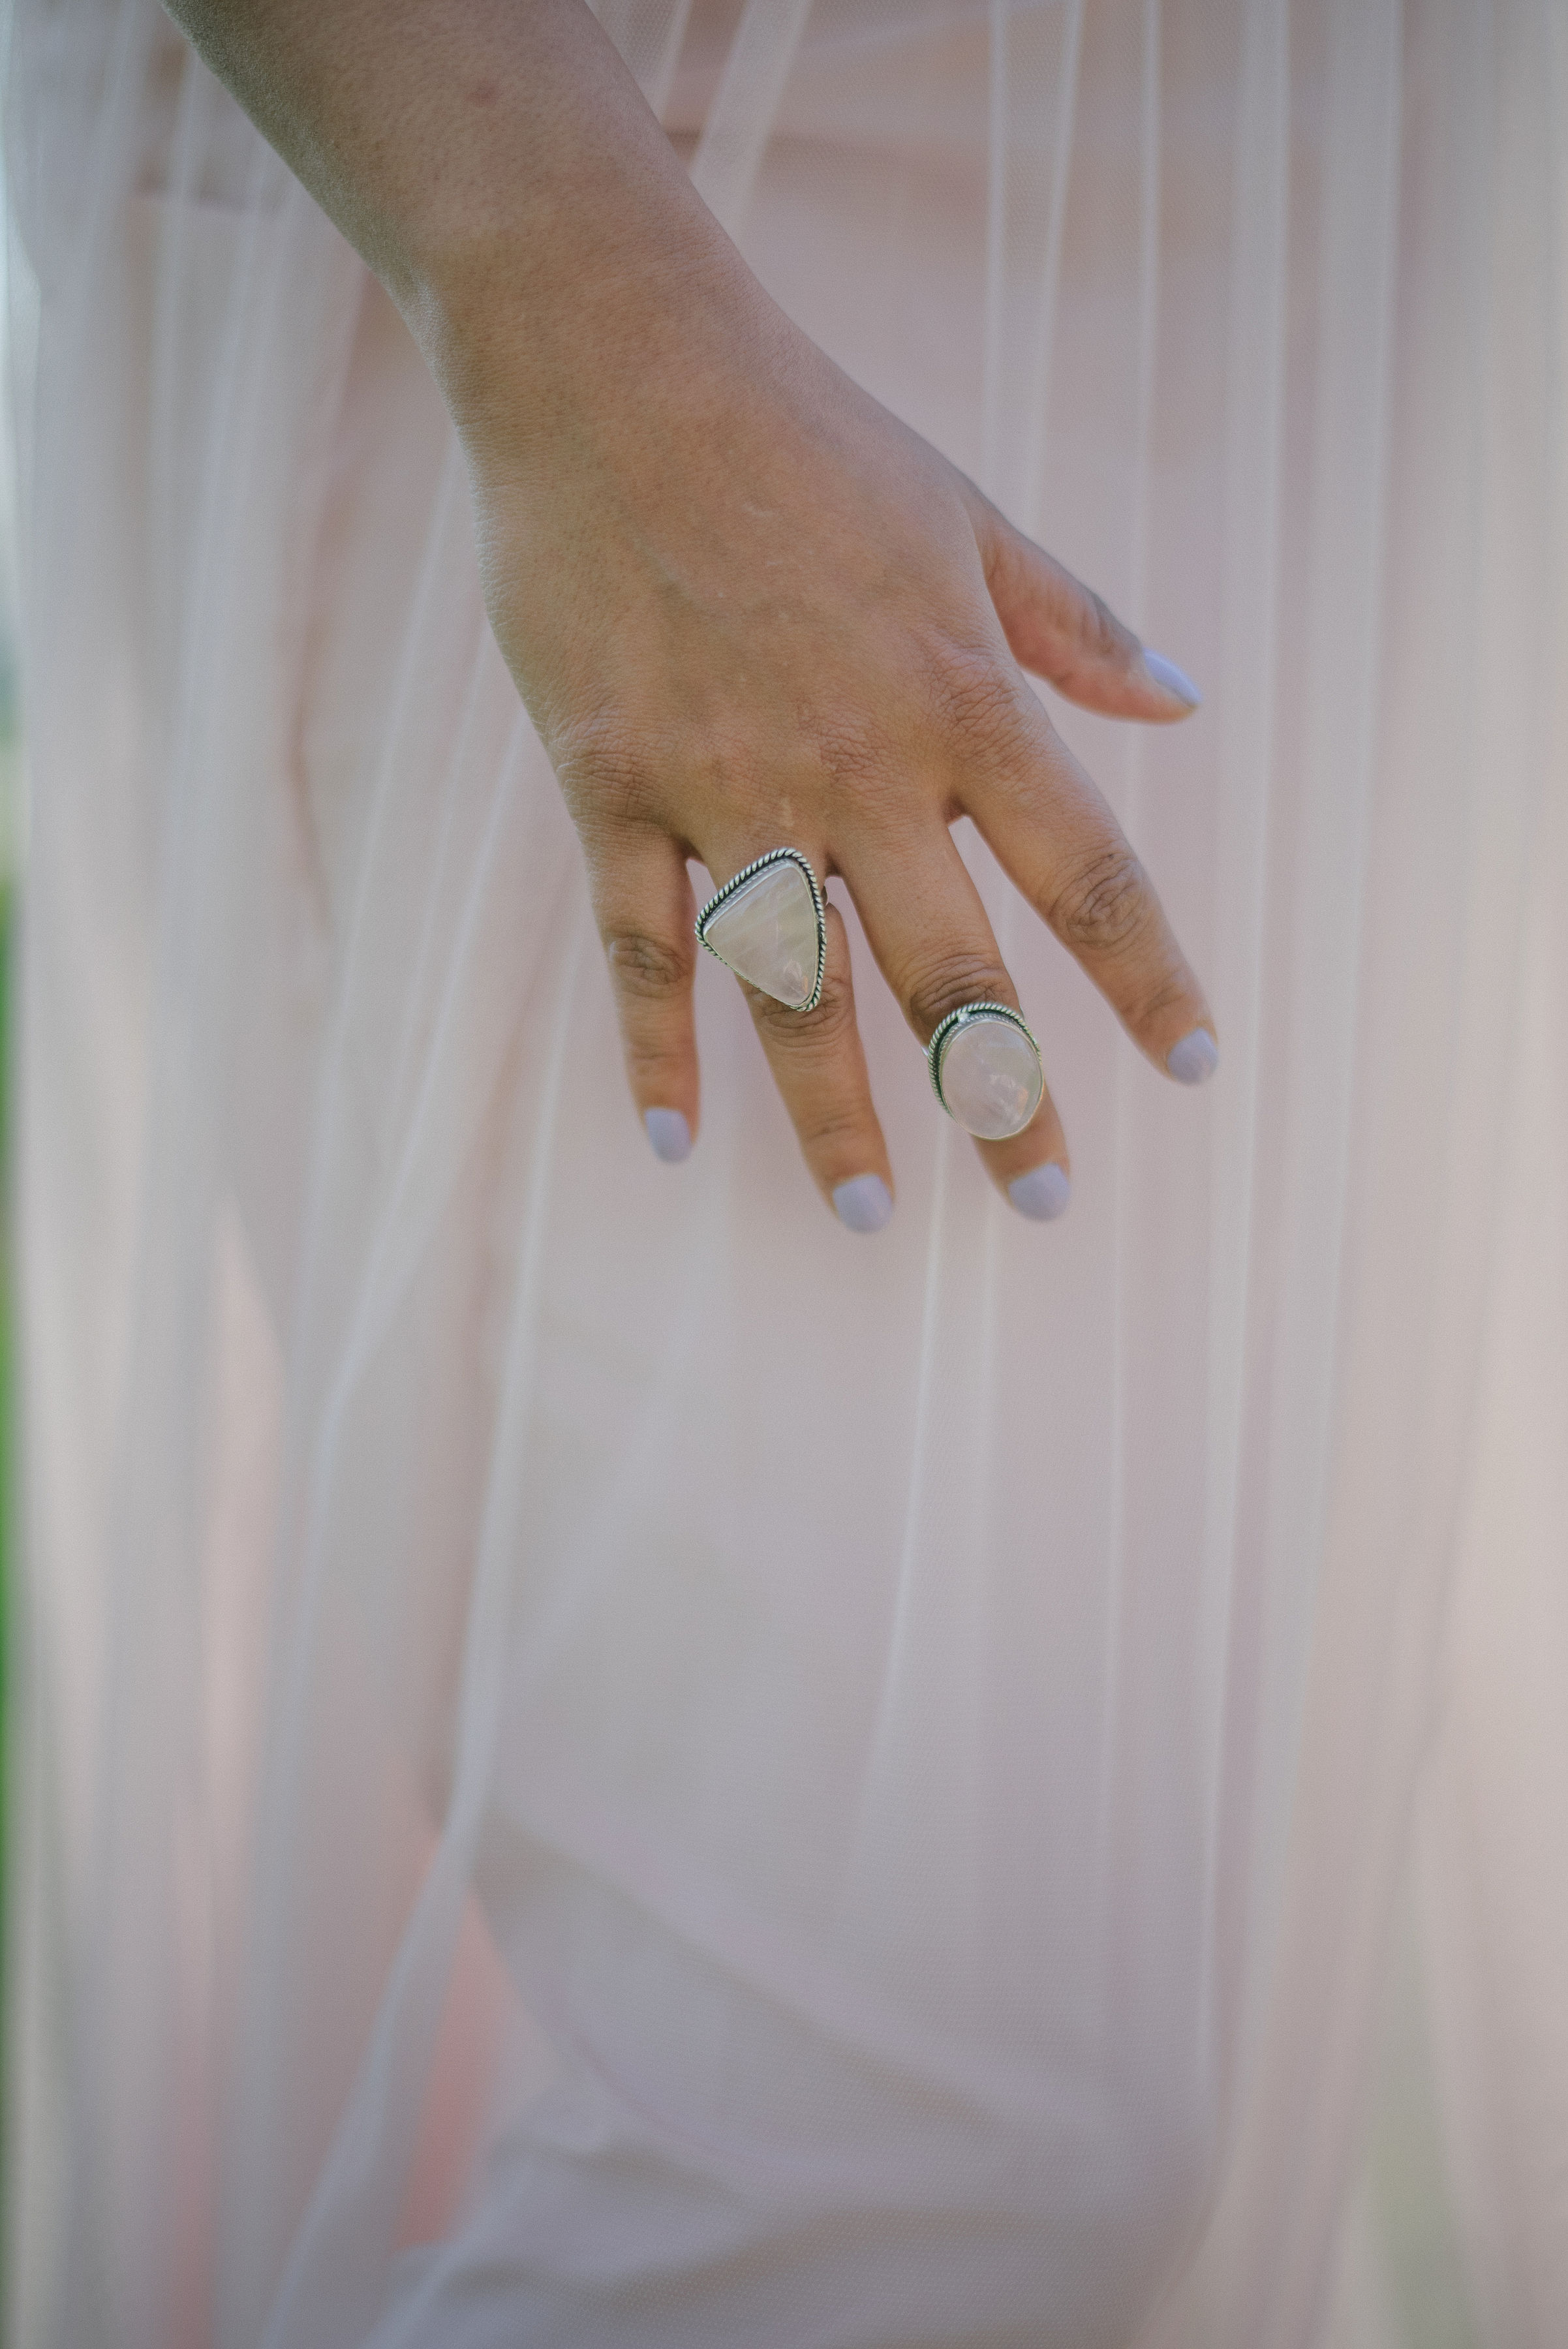 Wearable rose quartz crystal jewelry - these statement rings are so pretty!